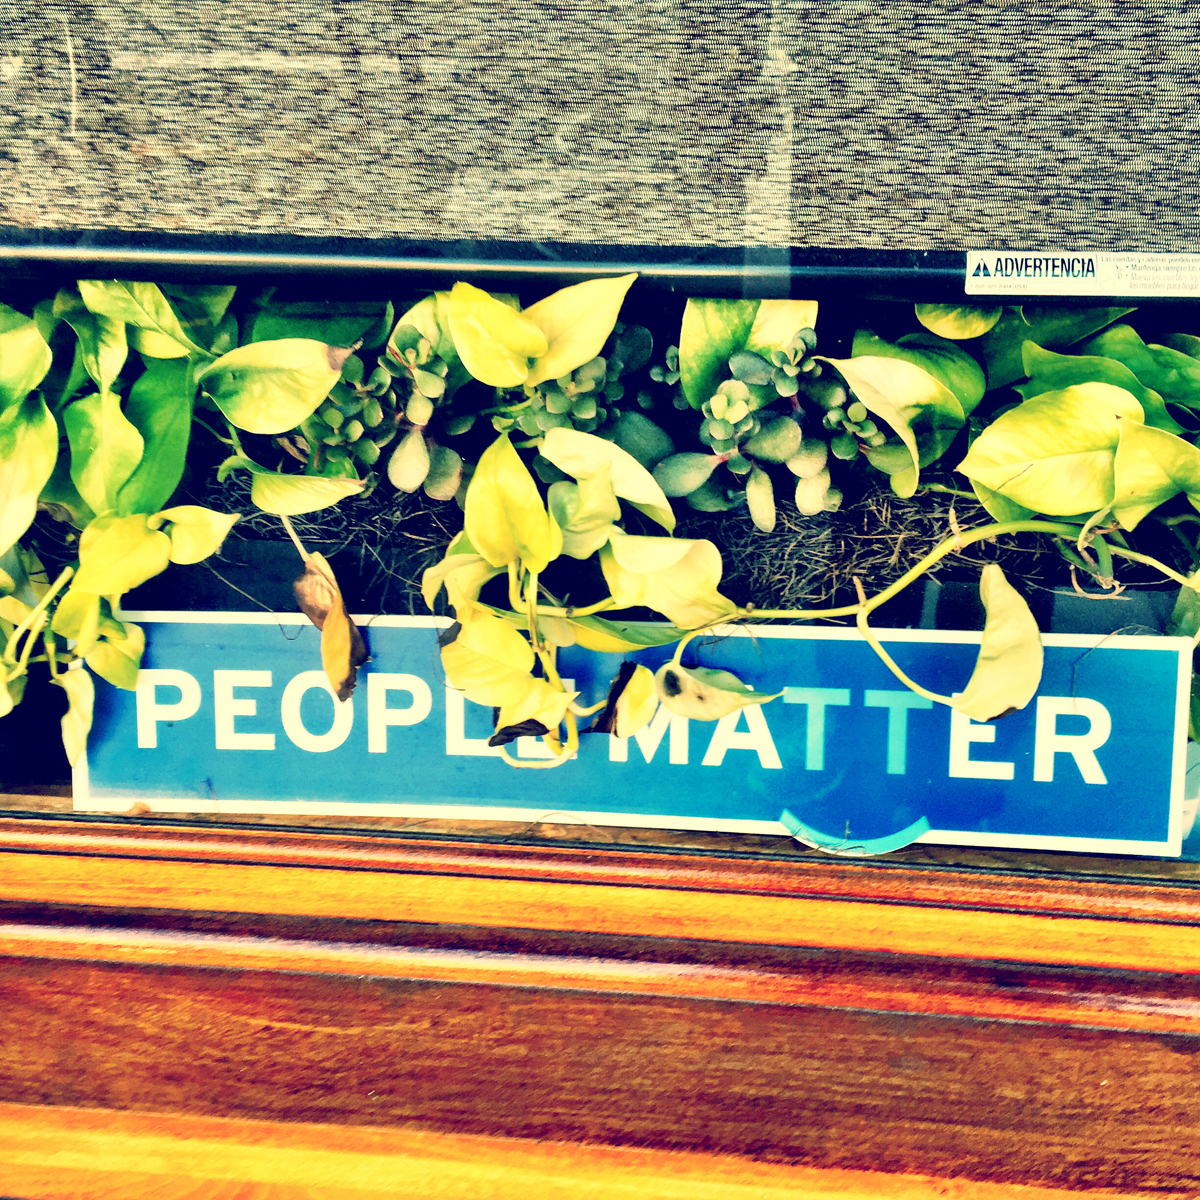 People Matter is one of the new tech companies in town.  They have become known for their swanky office space that includes every version of Mario Kart and a roof-top bar stocked with beer on tap.  I guess they practice what they preach...people matter.